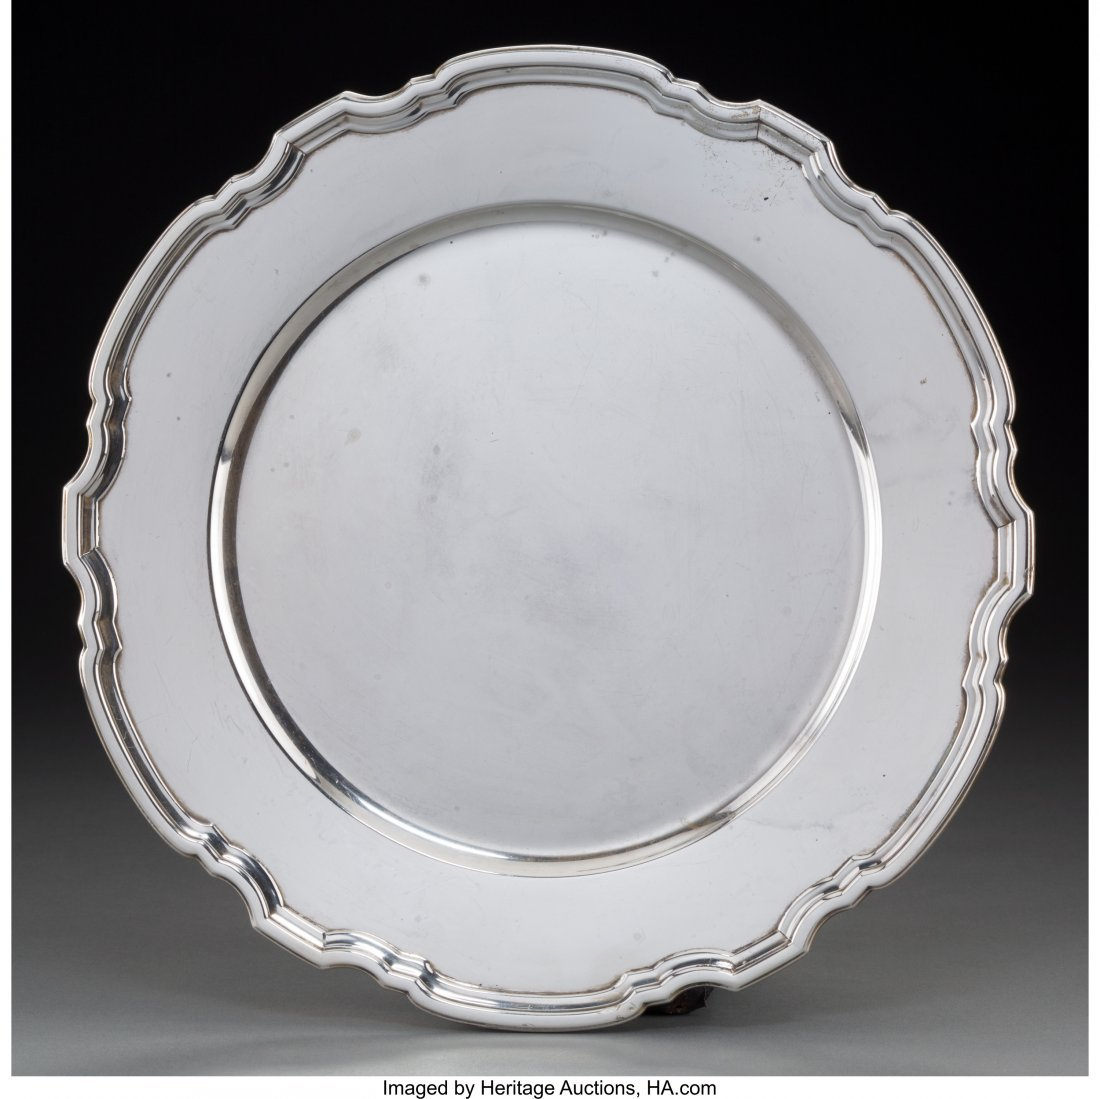 74182: A Tiffany & Co. Silver Plate, New York City Mark